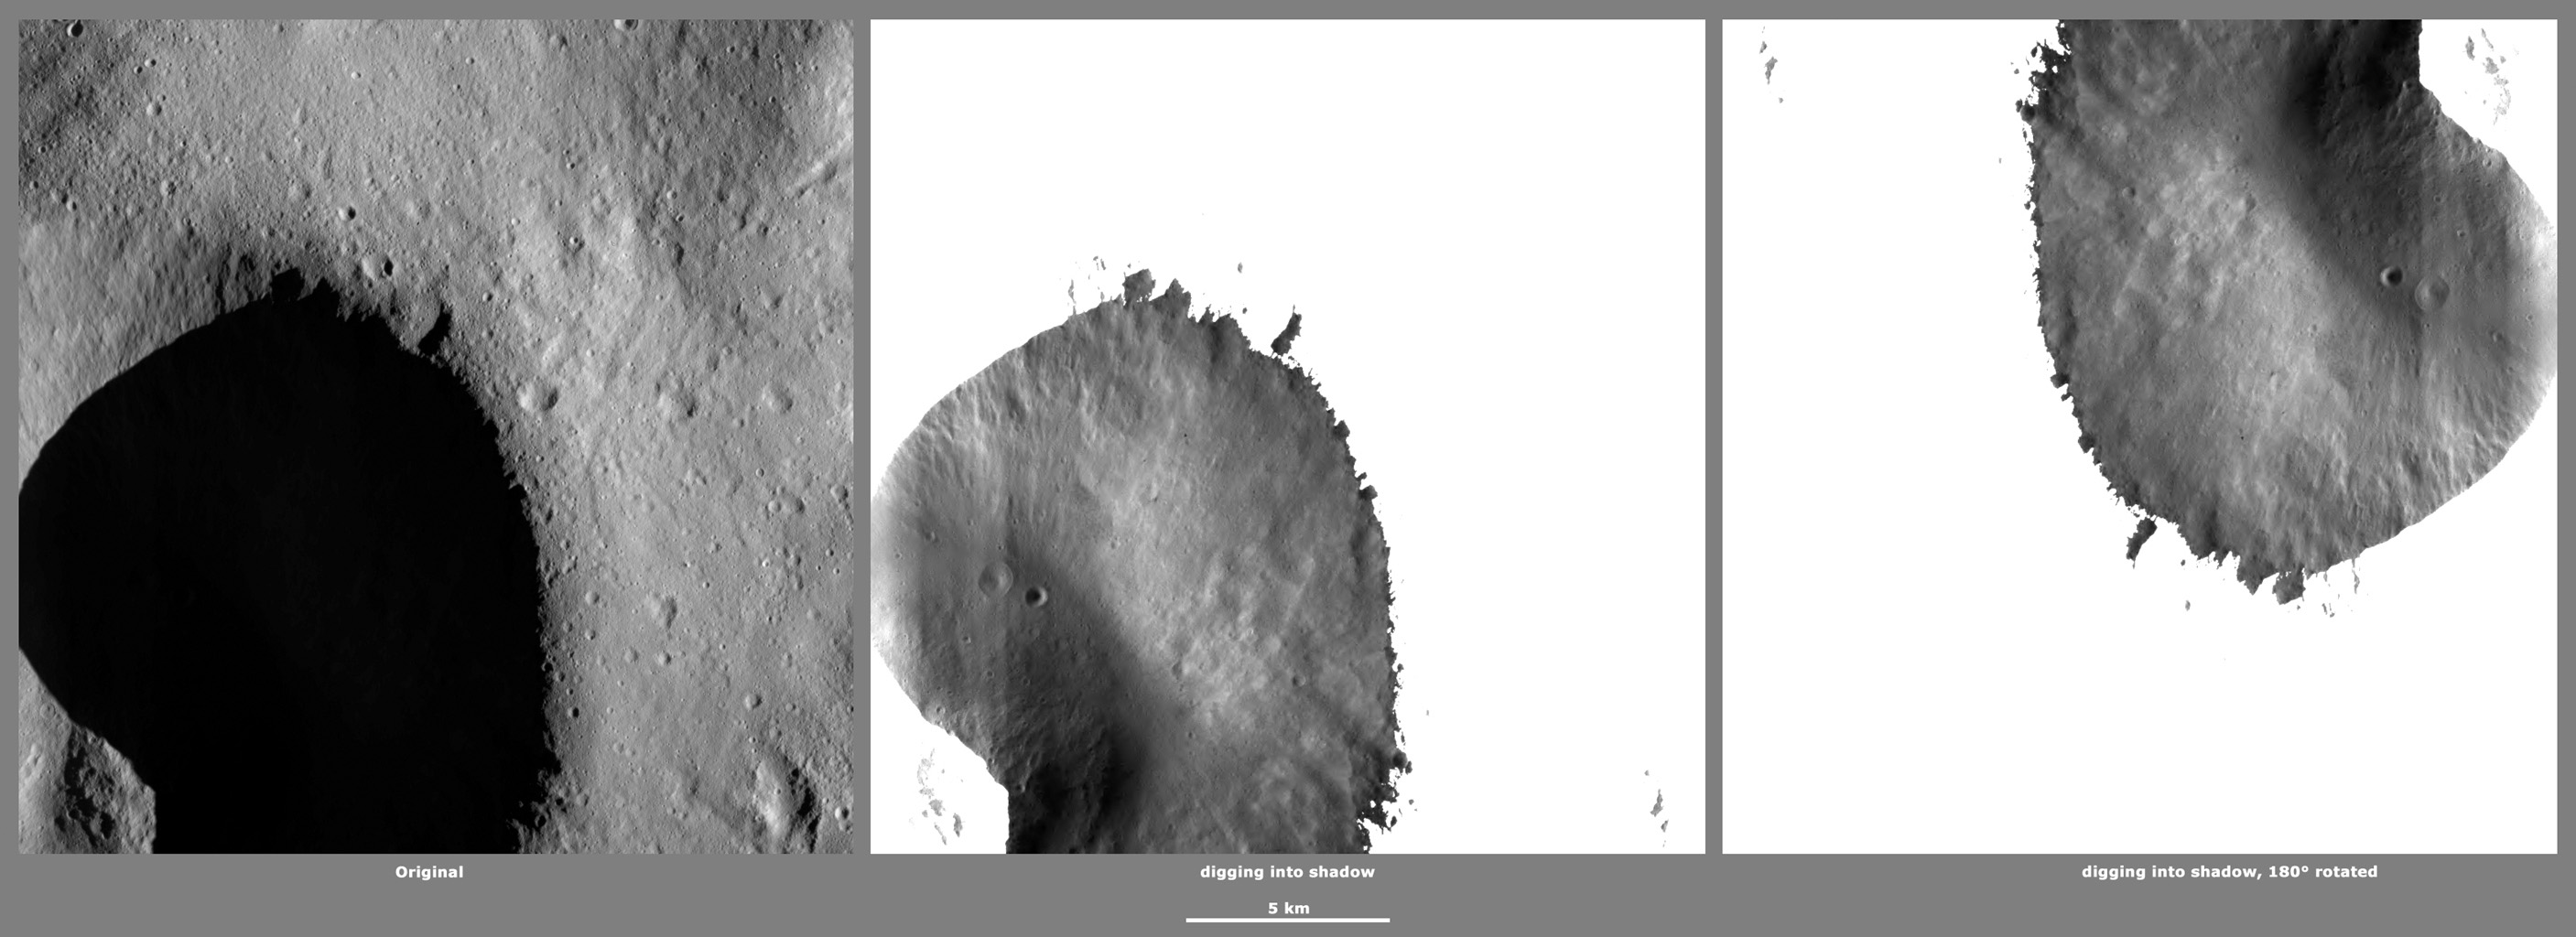 These images from NASA's Dawn spacecraft, located in Vesta's Caparronia quadrangle, in Vesta's northern hemisphere, demonstrate a special analytical technique, which results in shadowed areas of Vesta's surface becoming illuminated.